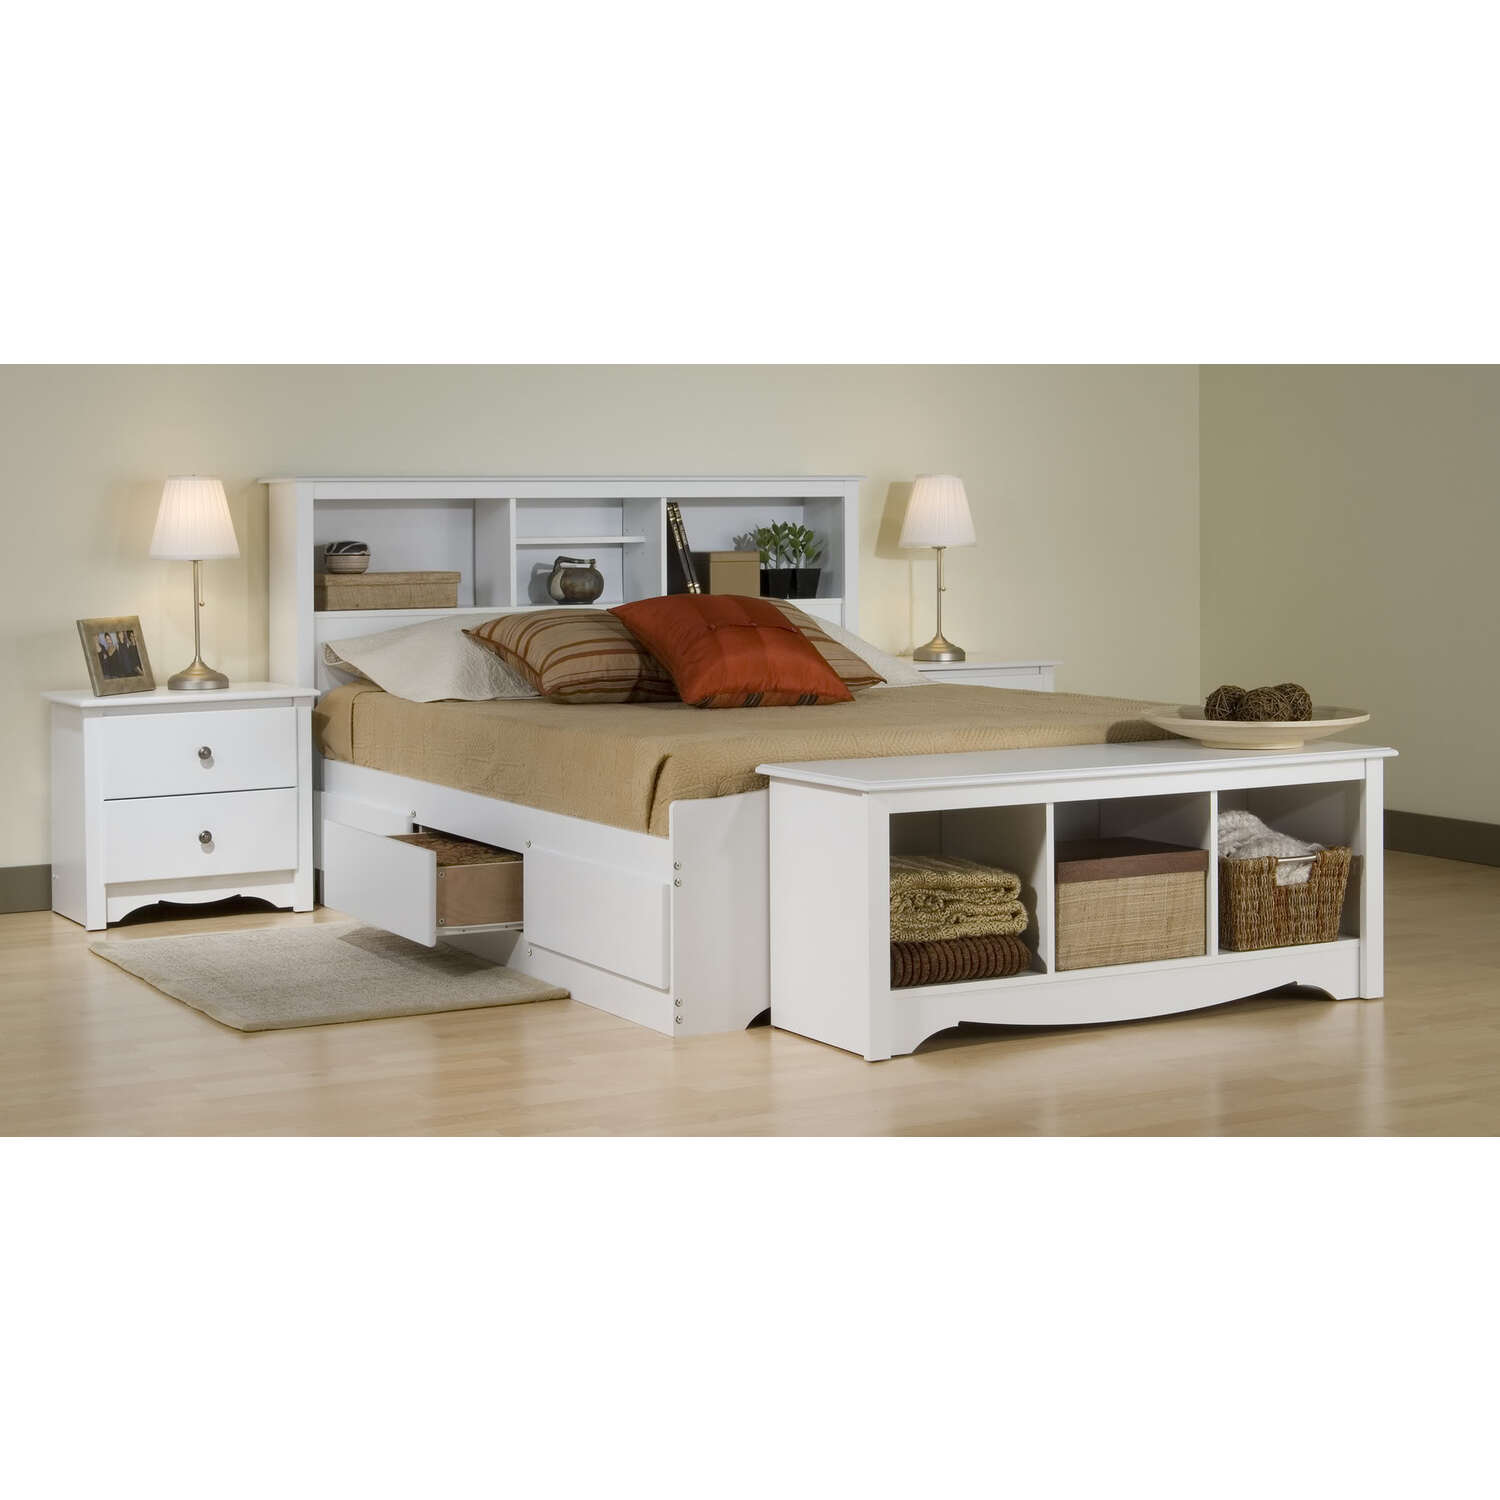 Monterey Bedroom Set - [WMQB5PC]